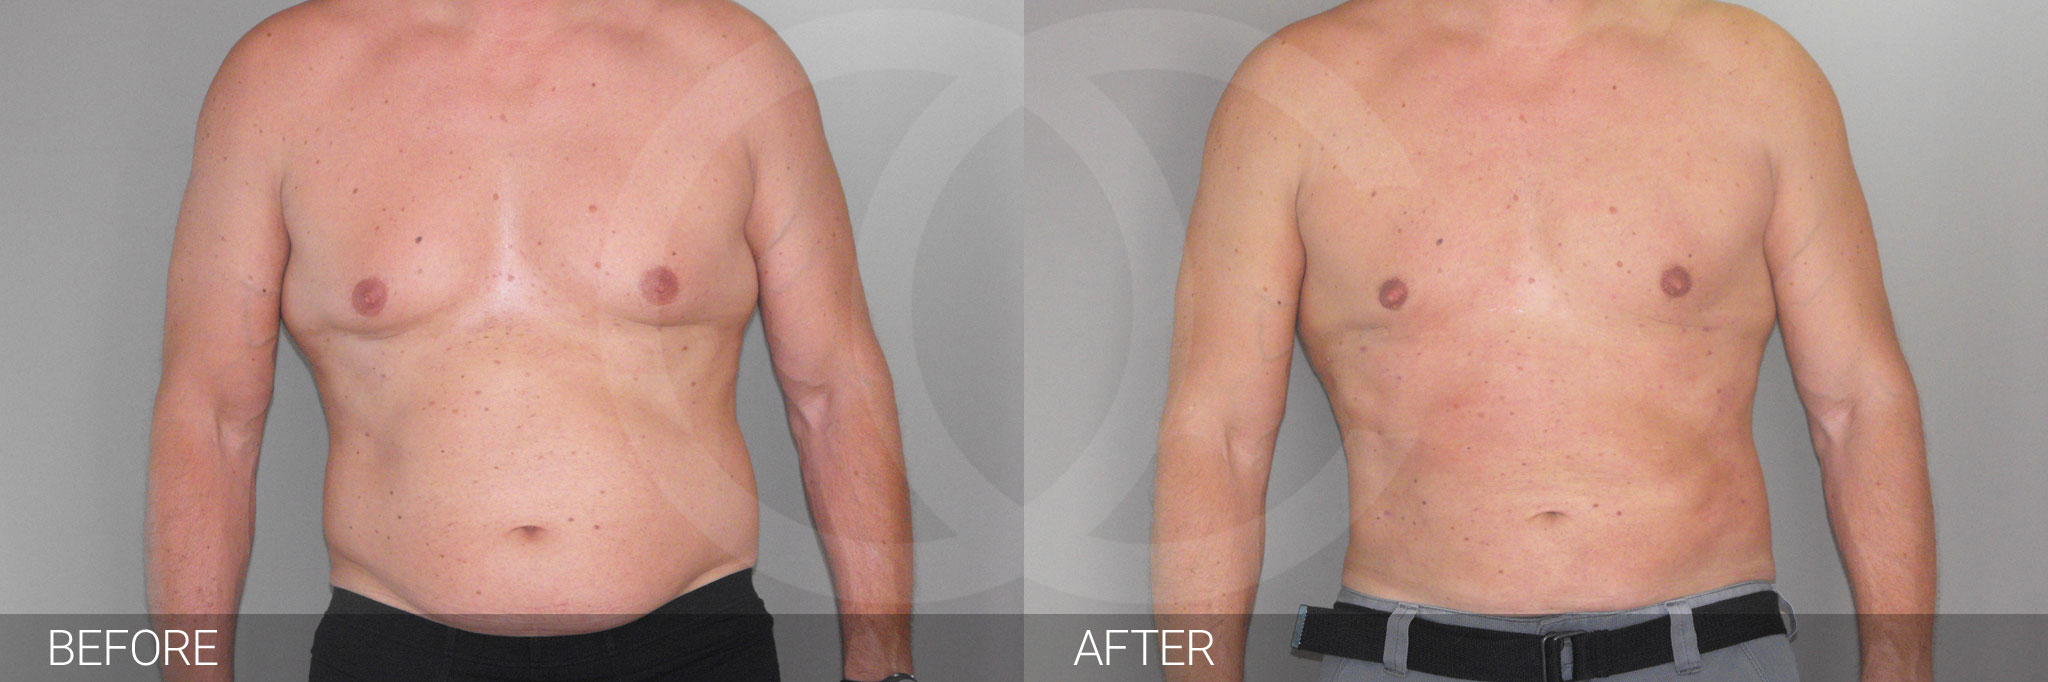 Gynecomastia MALE CHEST CONTOURING ante/post-op I